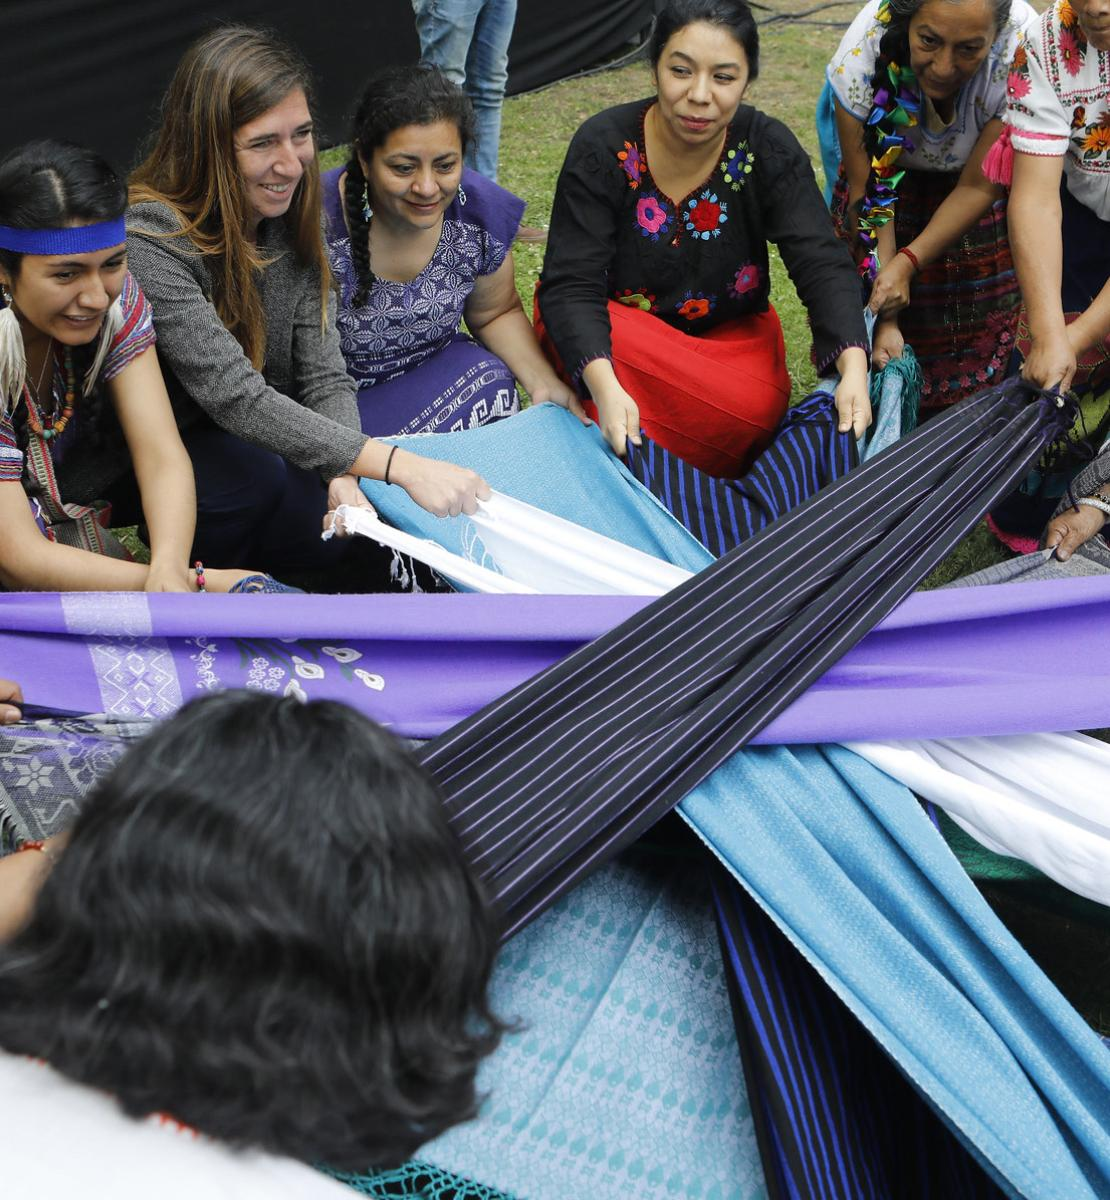 Indigenous women's group members hold several pieces of fabric in a circular shape. It's part of a performance for the opening ceremony to kick off the Generation Equality Forum in Mexico. The ceremony was held at the Complejo Cultural Los Pinos in Mexico City on 29 March 2021.